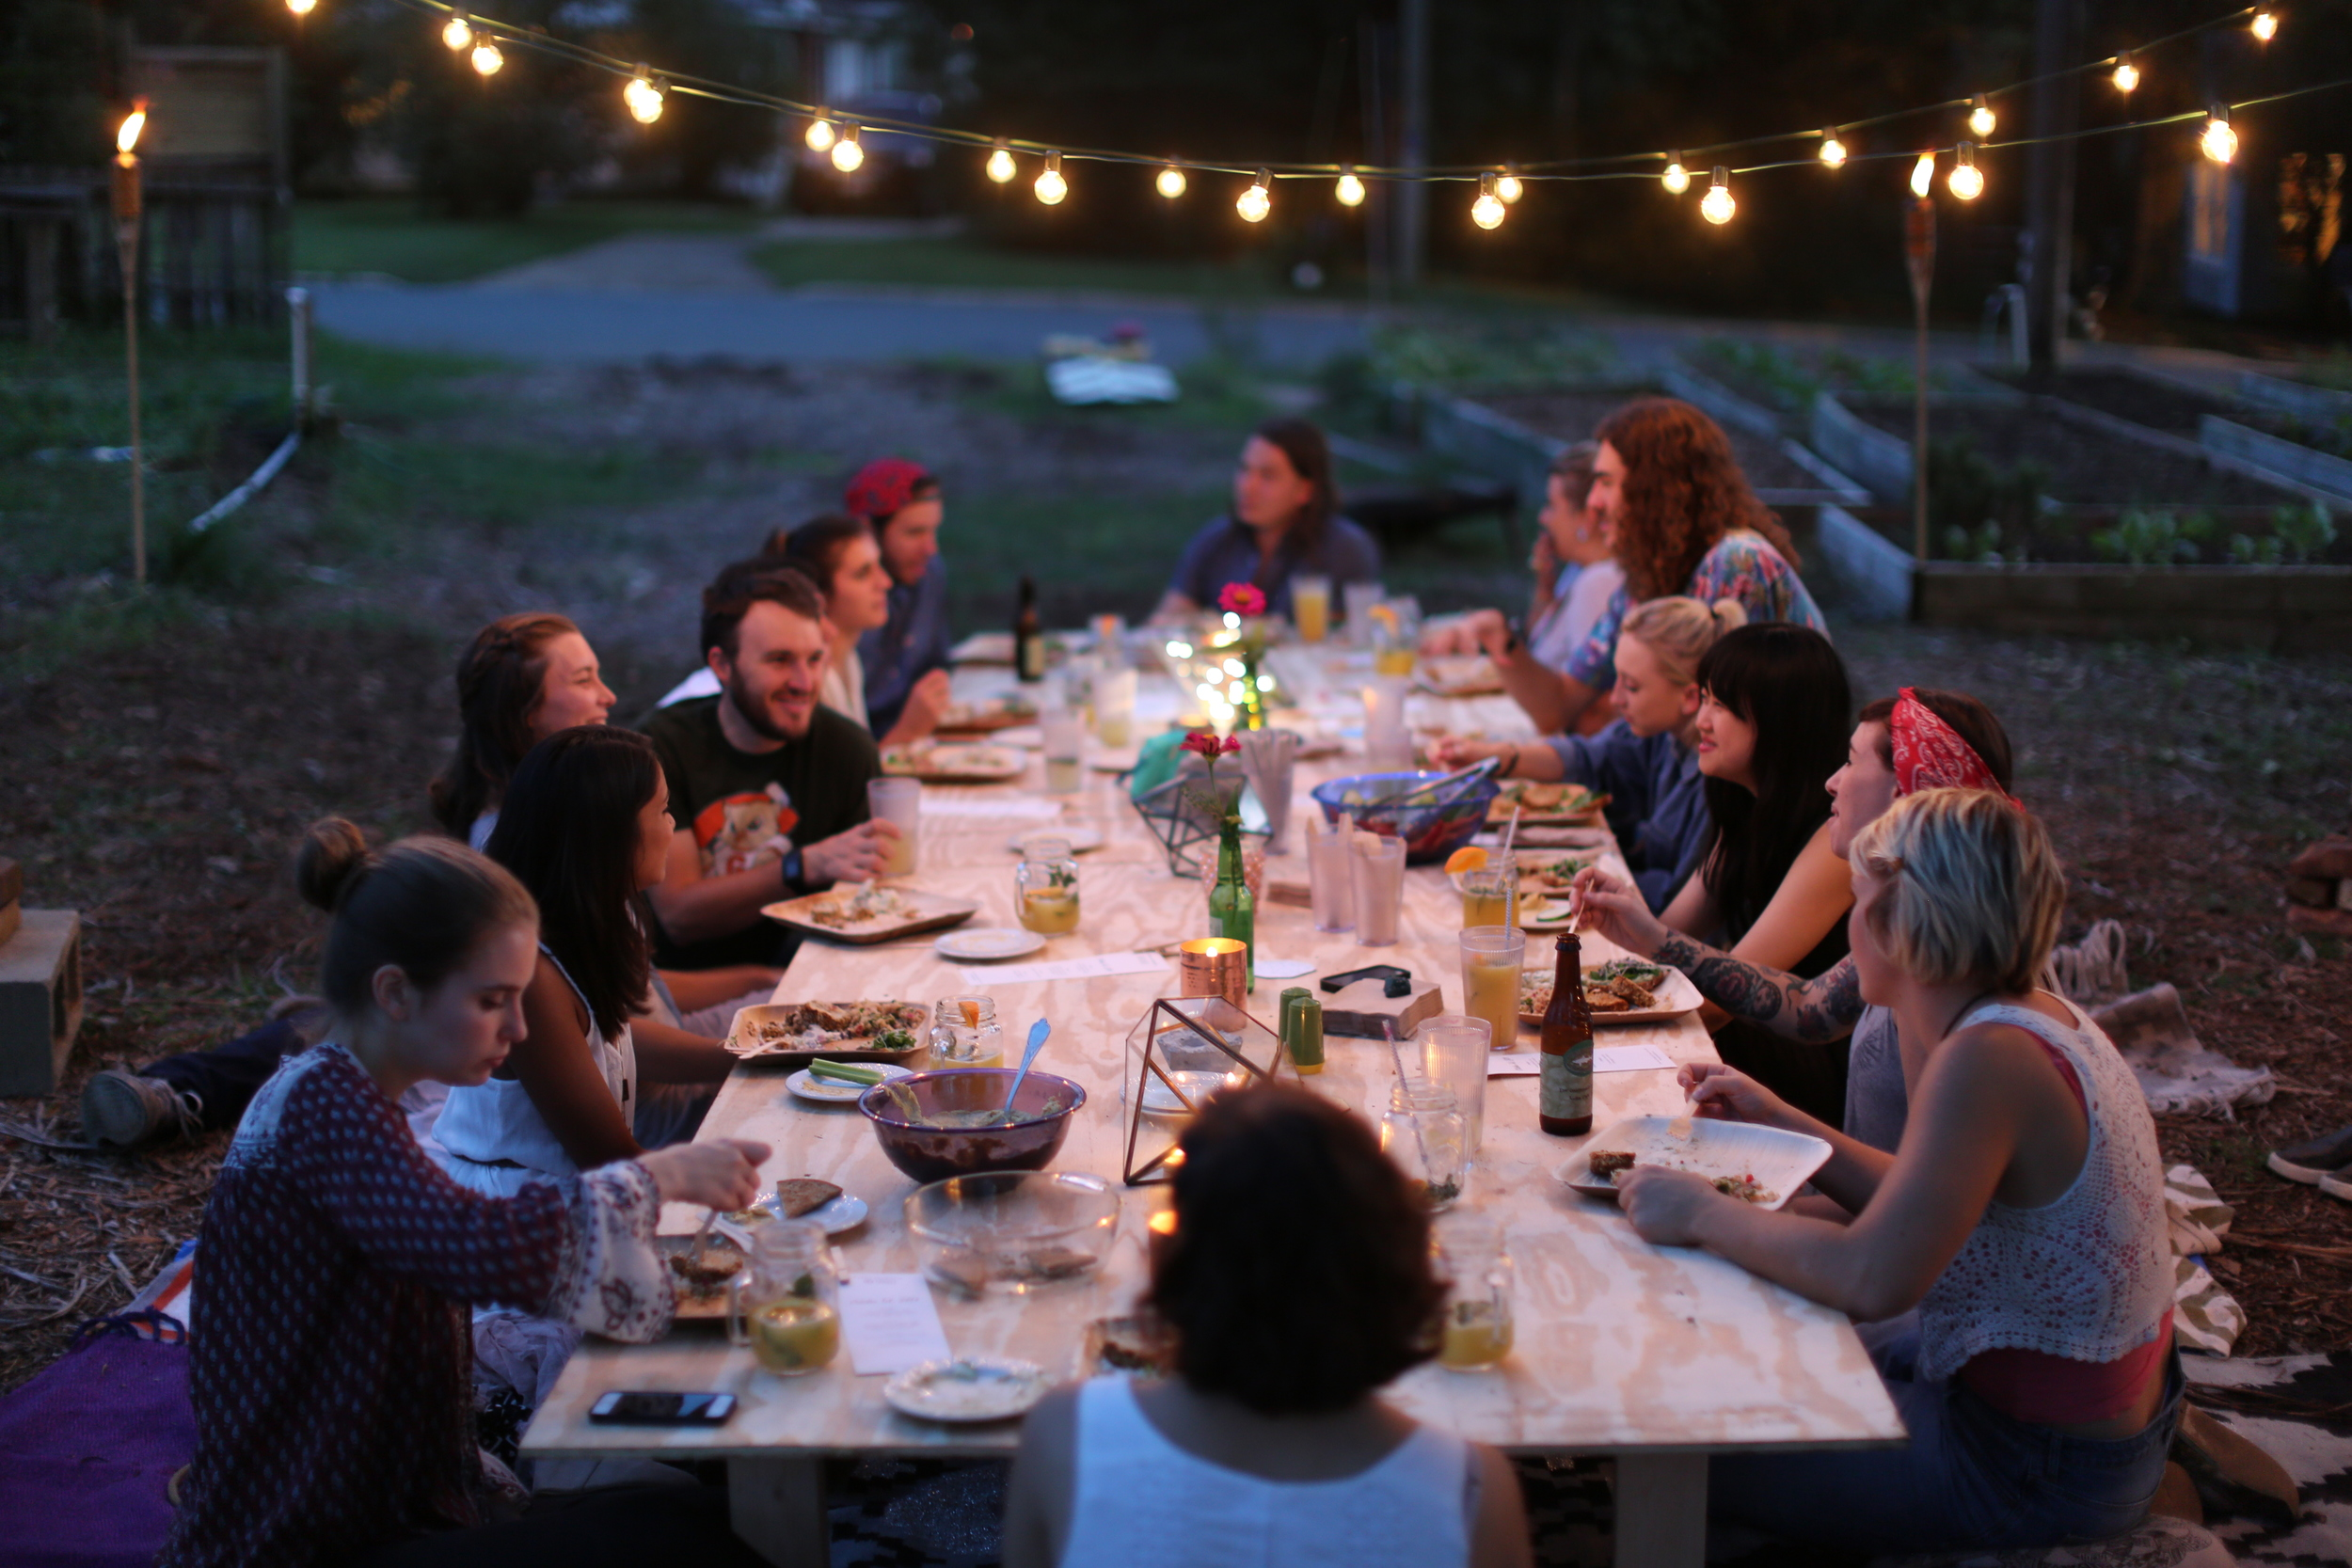 Farm to table fancy picnic dinner